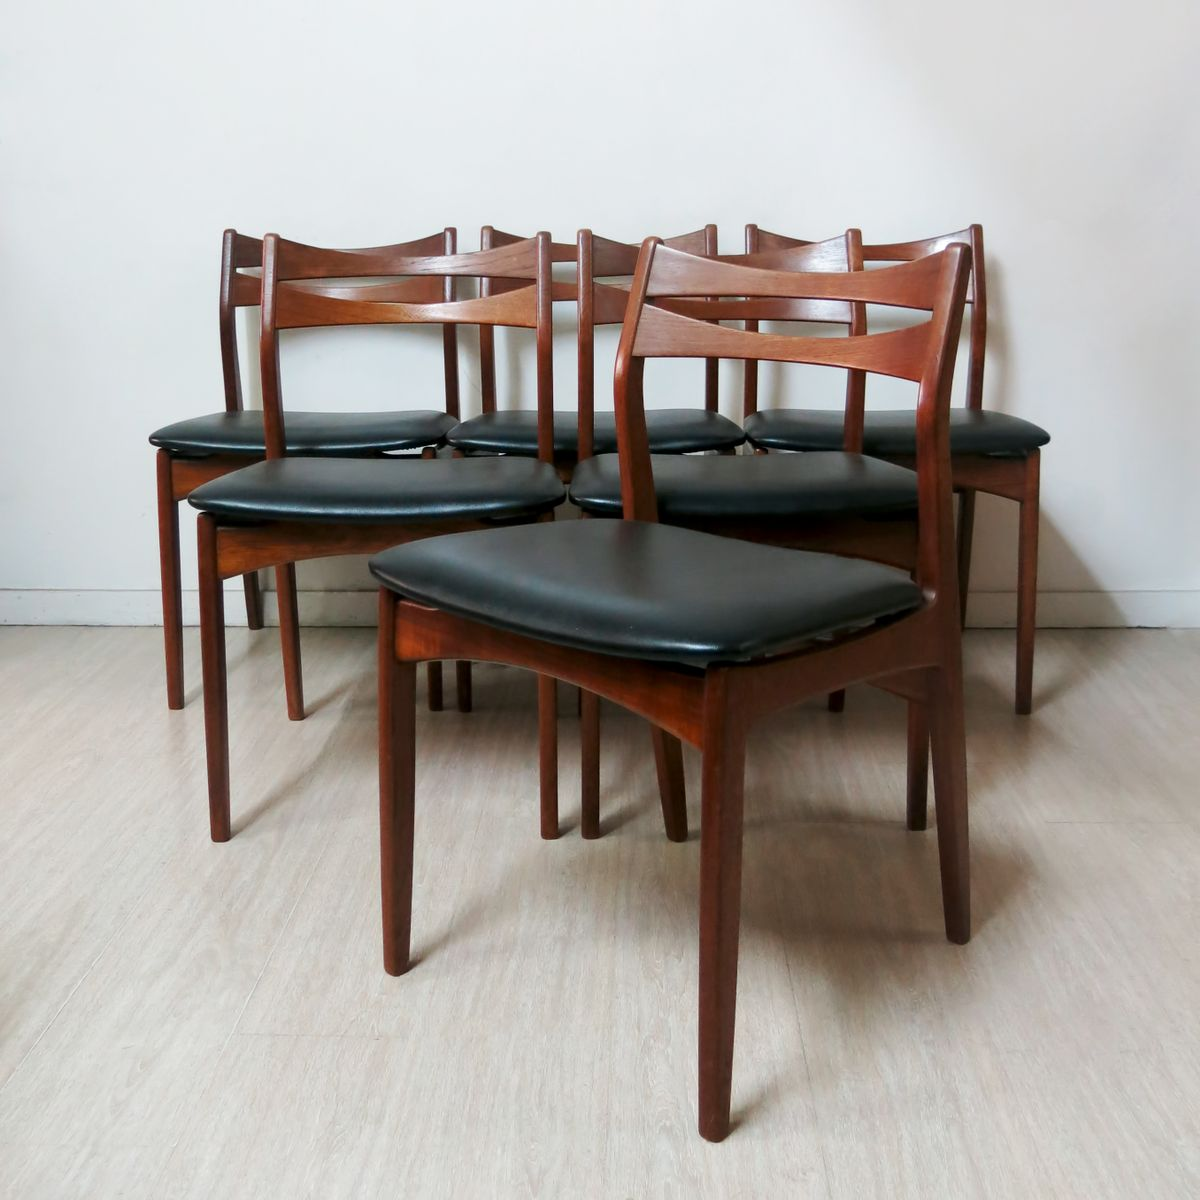 danish dining chairs by christian linneberg 1960s set of 6 for sale